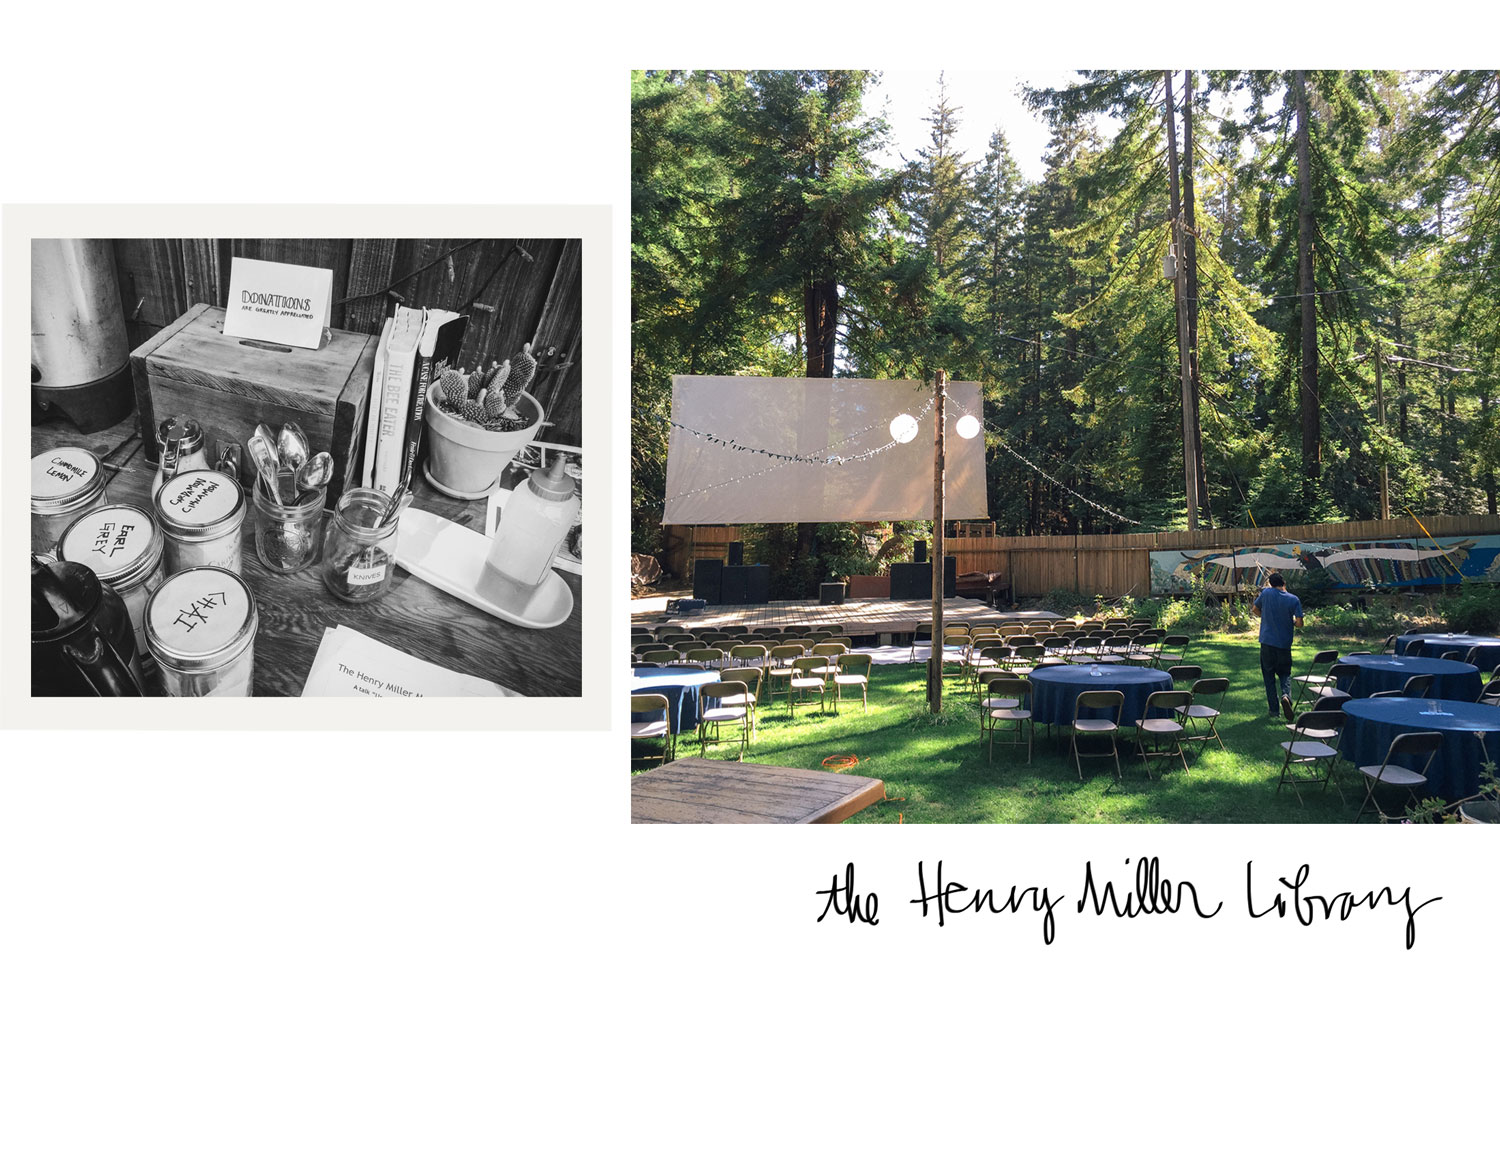 The-Henry-Miller-Memorial-Library-by-Naomi-Yamada.jpg